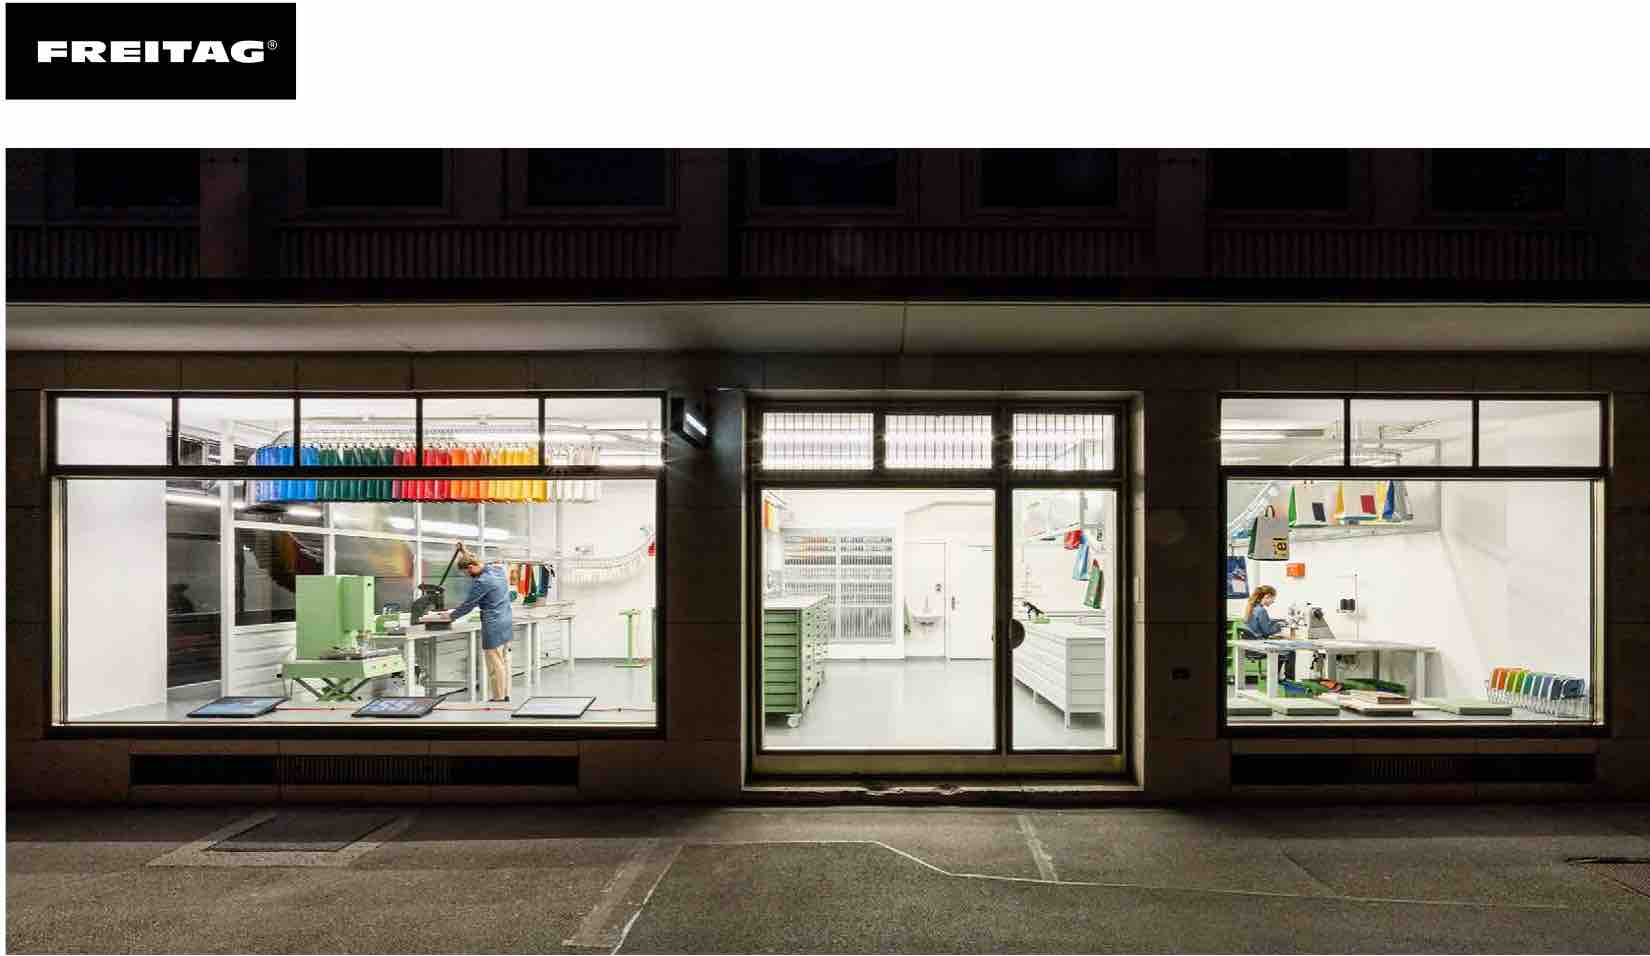 FREITAG SWEAT-YOURSELF-SHOP Zurich